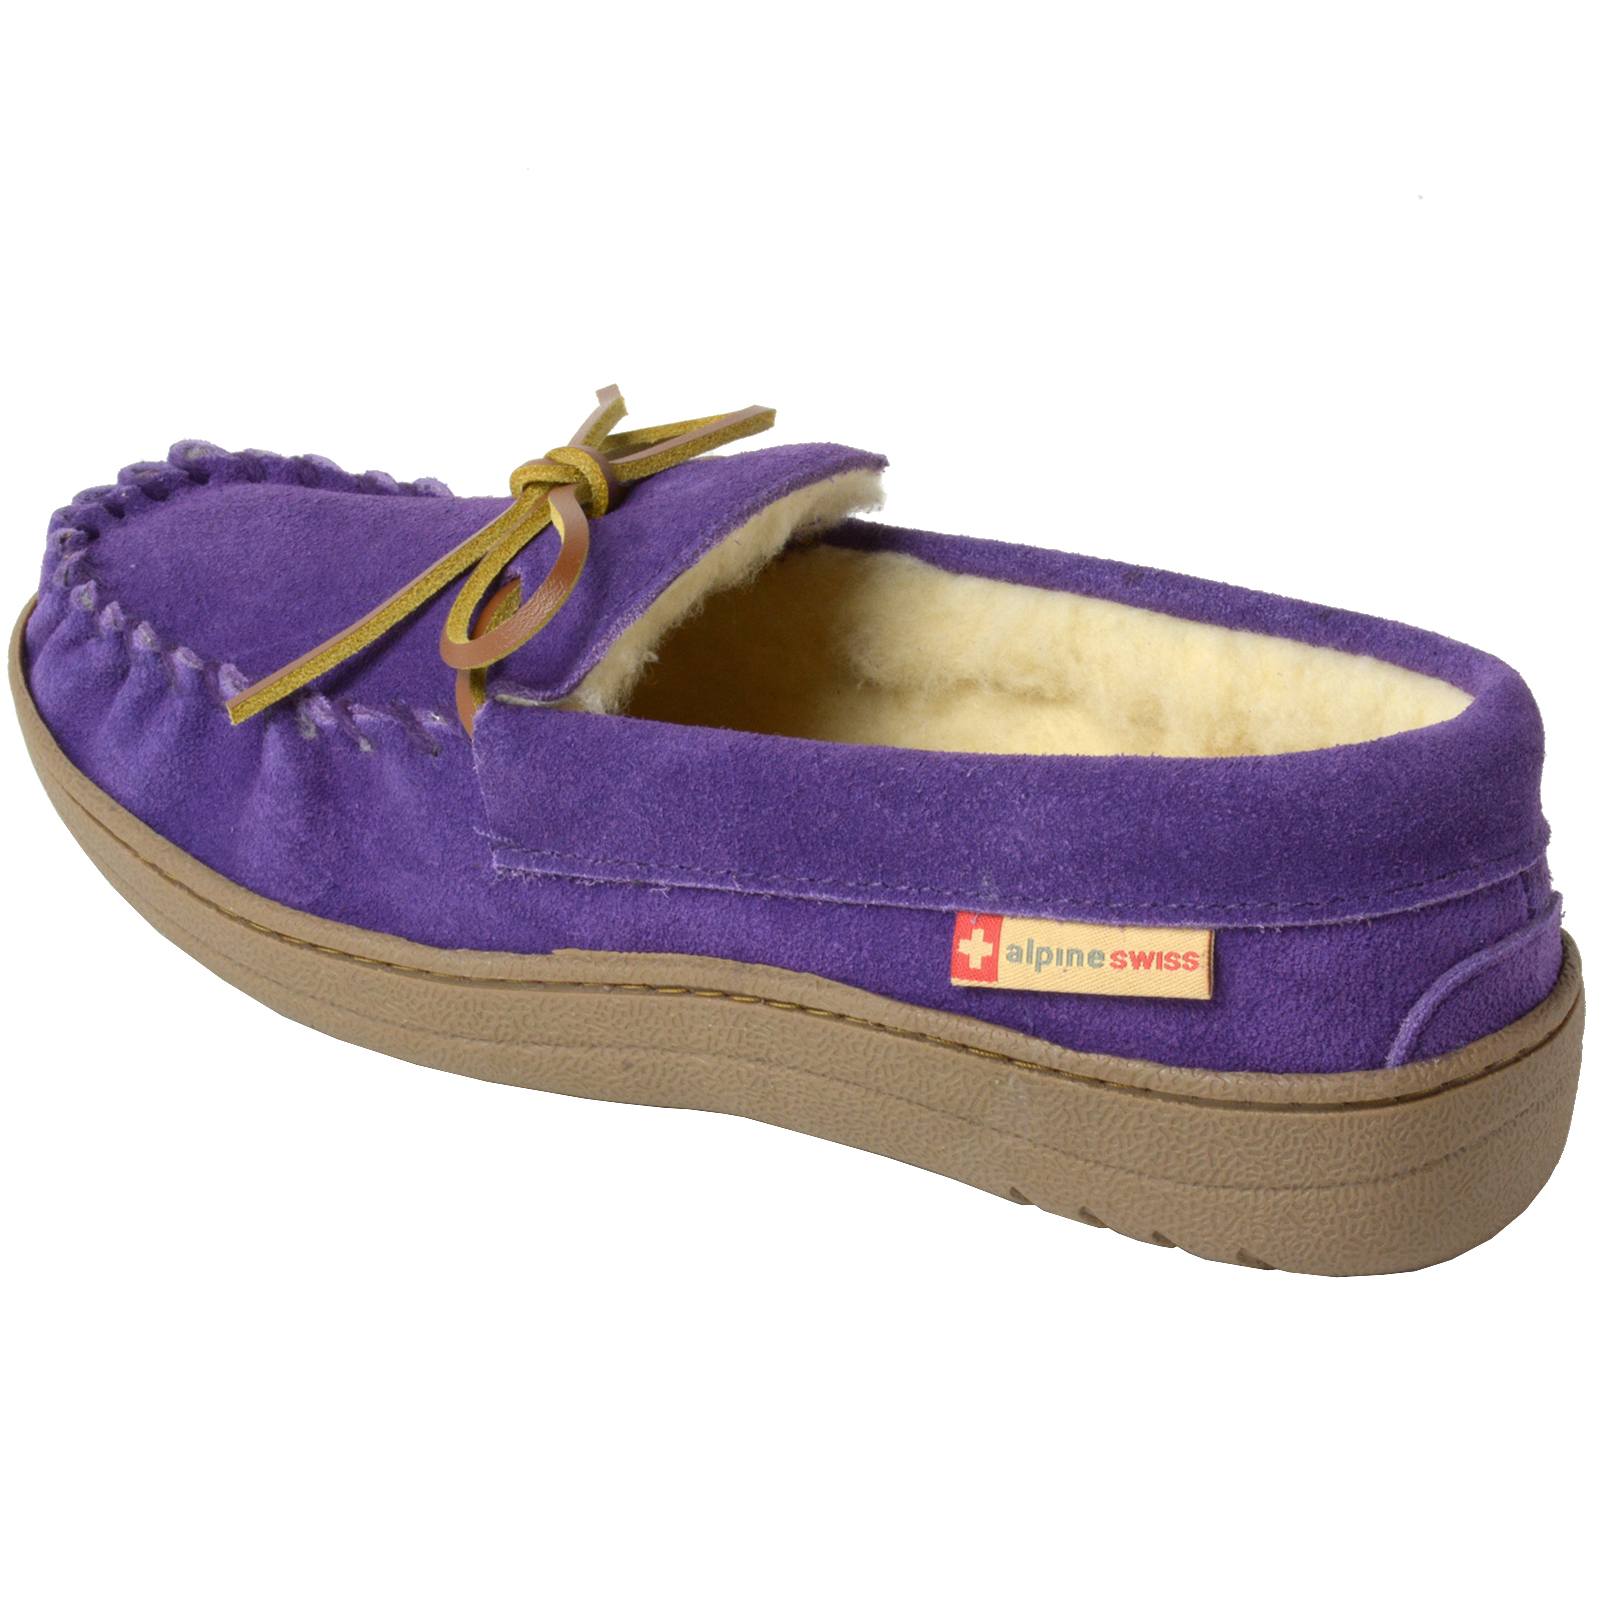 Alpine-Swiss-Sabine-Womens-Suede-Shearling-Moccasin-Slippers-House-Shoes-Slip-On miniature 35